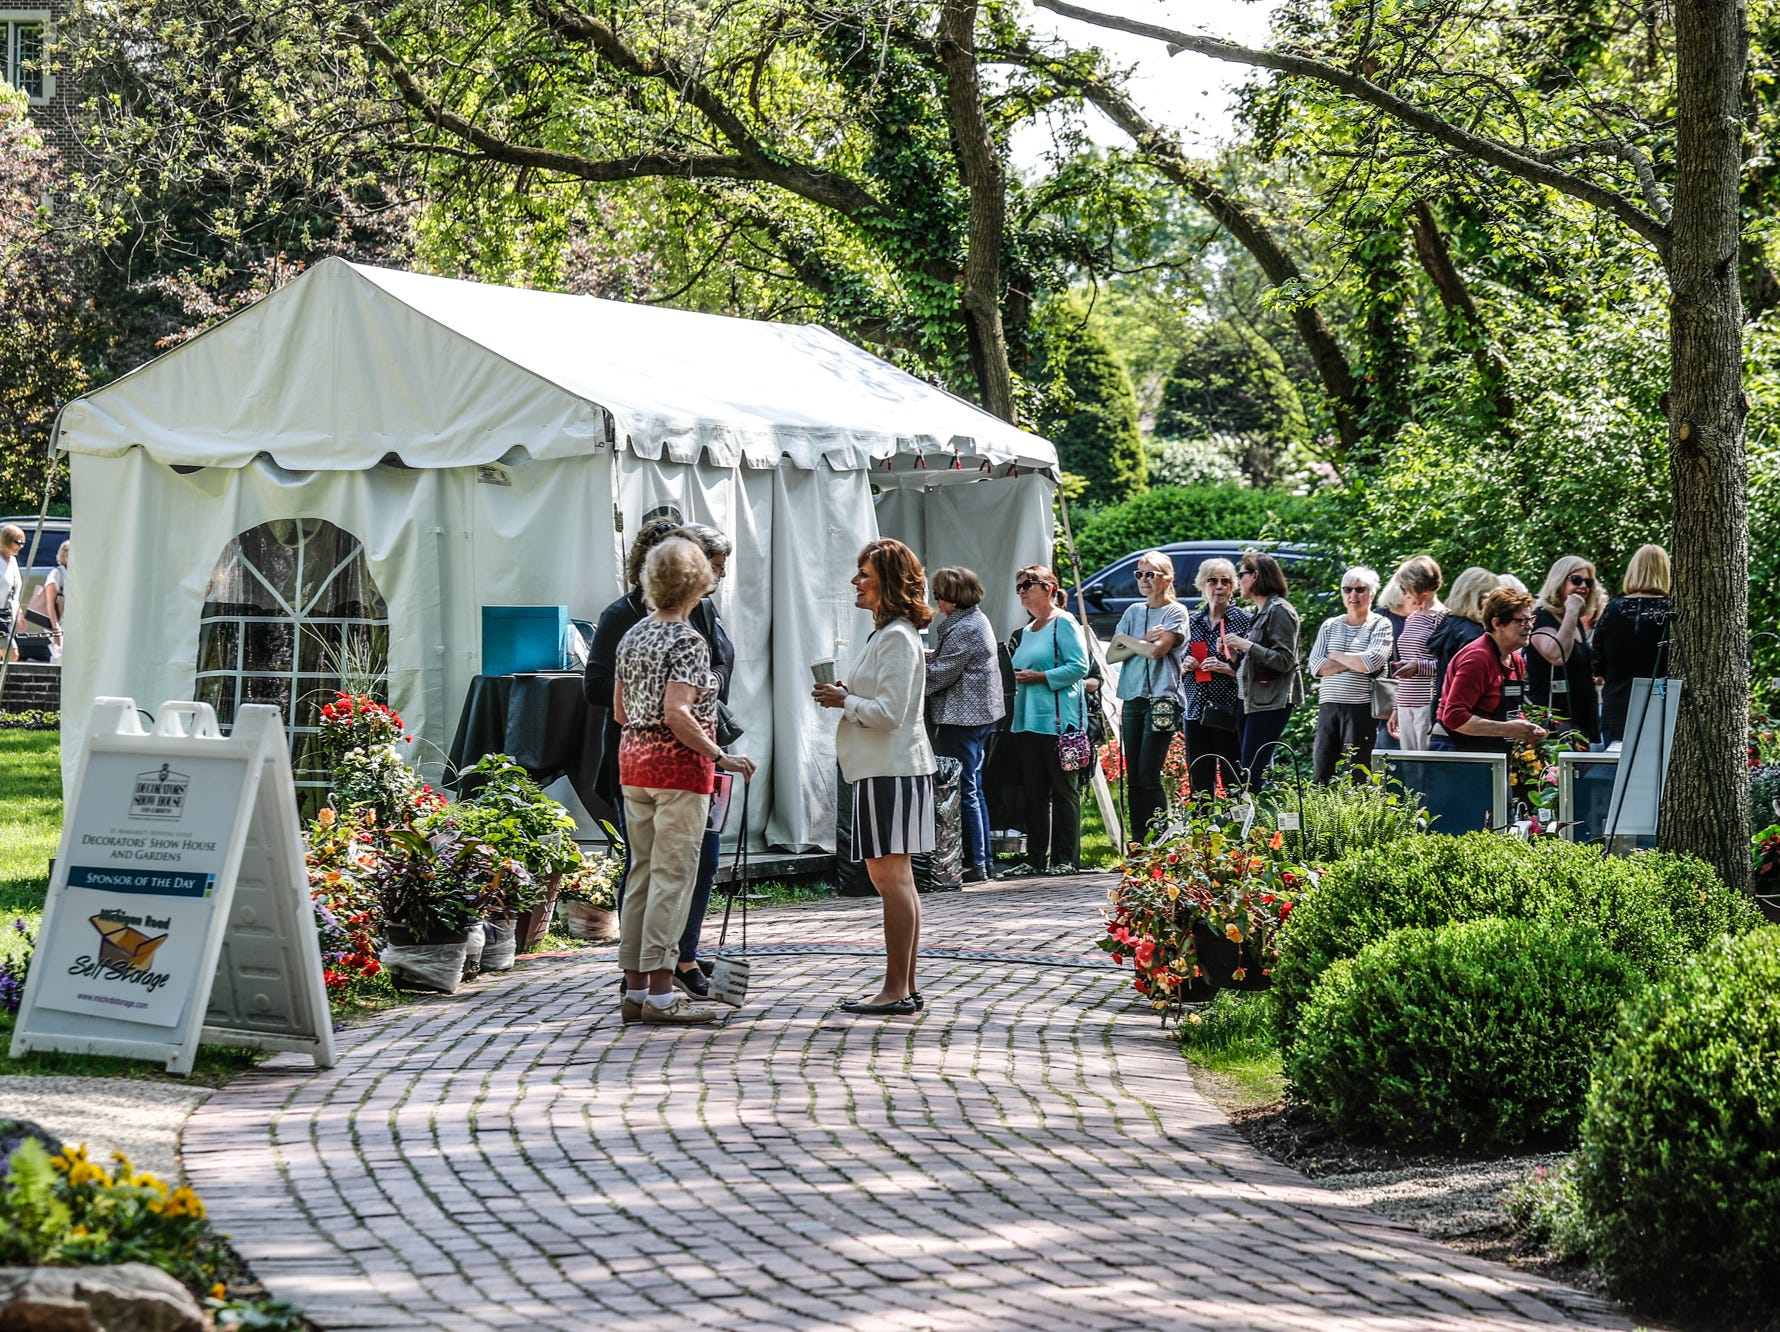 Guests line up to tour the 58th annual St. Margaret's Hospital Guild Decorators' Show House and Gardens, located at 4160 Washington Blvd., Indianapolis, on Wednesday, May 8, 2019.